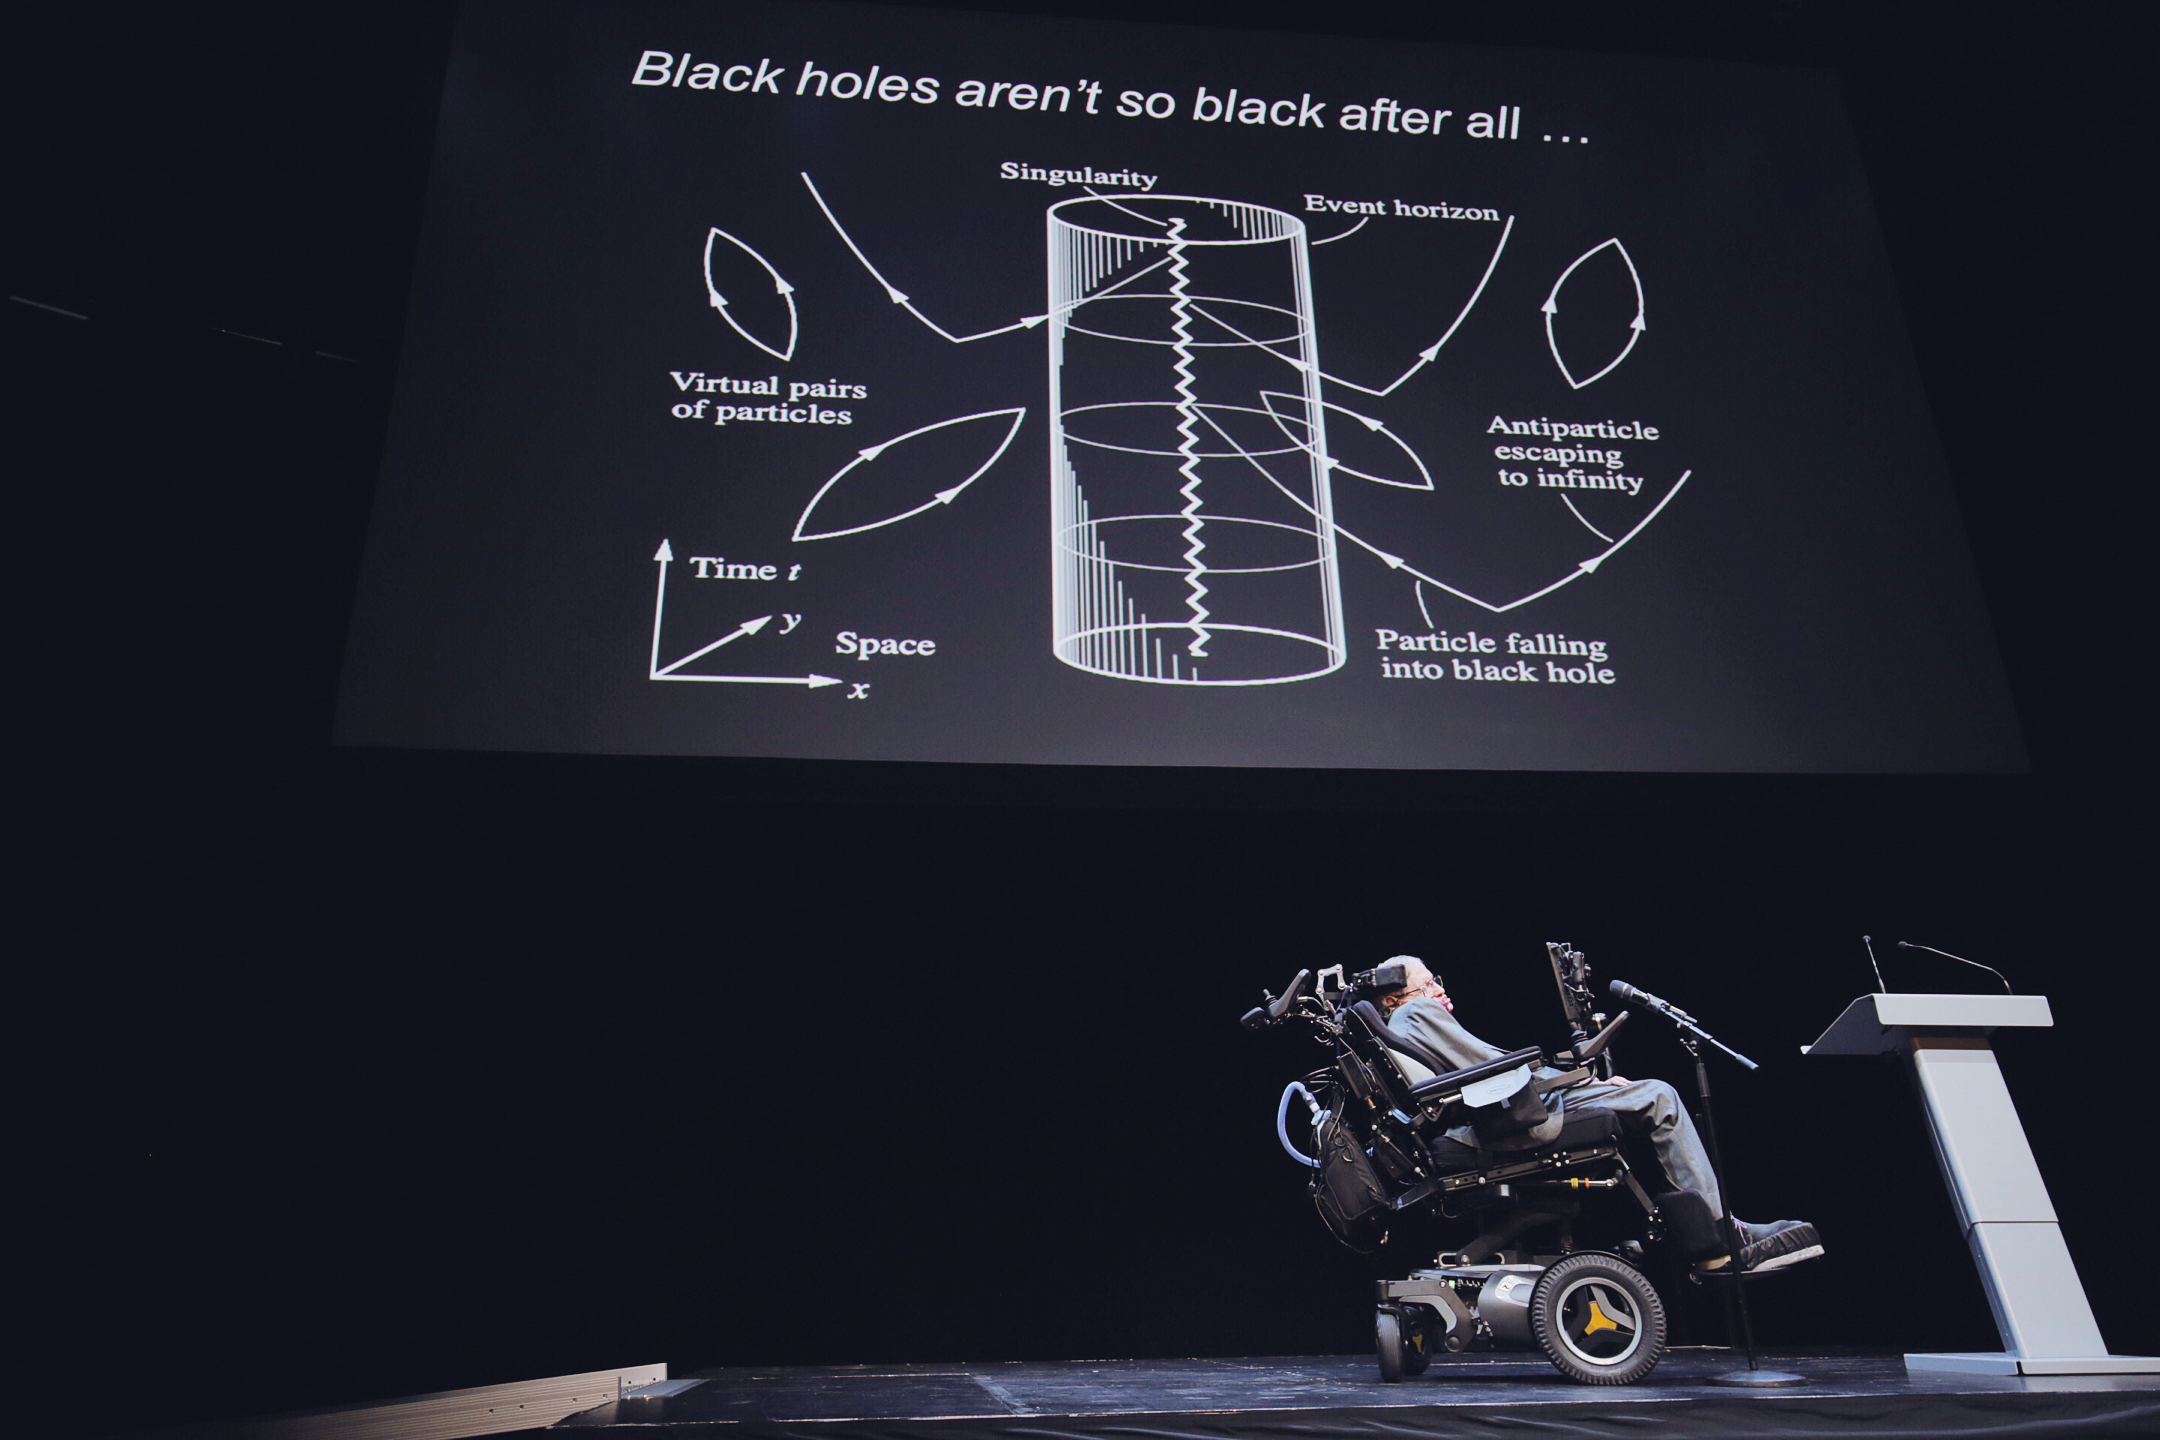 Stephen Hawking revealed his latest idea about where he believes lost information wind up after being sucked into a black hole — in alternative universes. Photo: Adam af Ekenstam